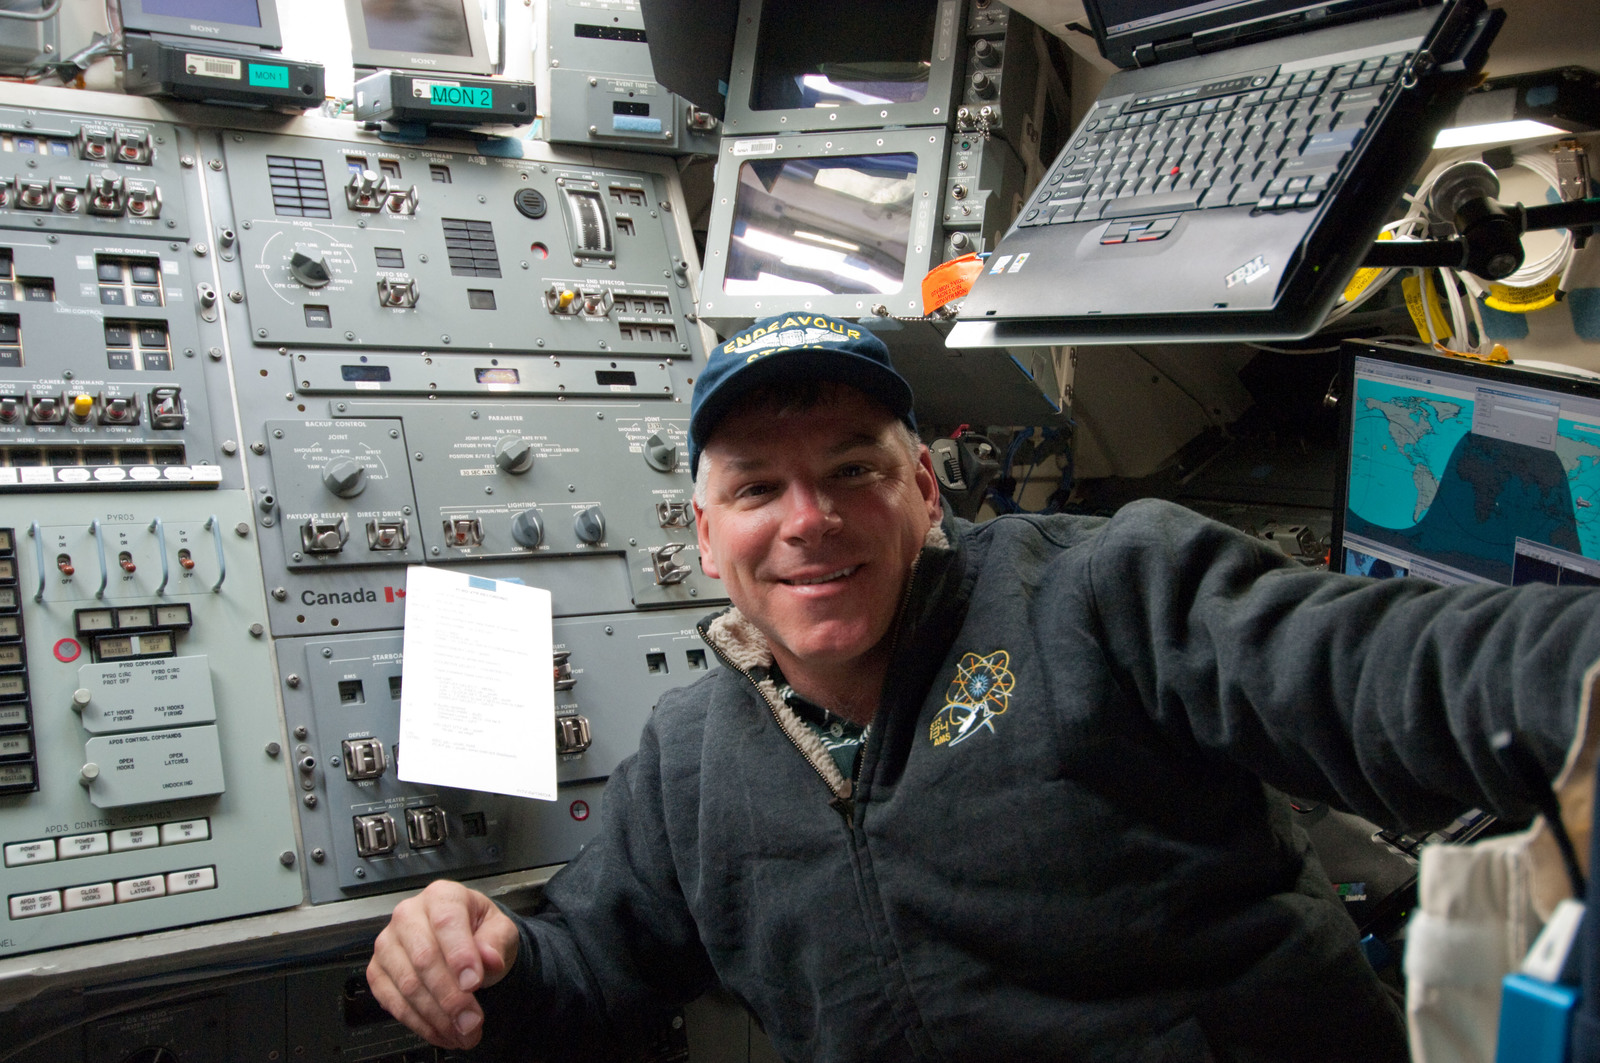 S134E005304 - STS-134 - View of STS-134 Pilot Johnson on the Flight Deck